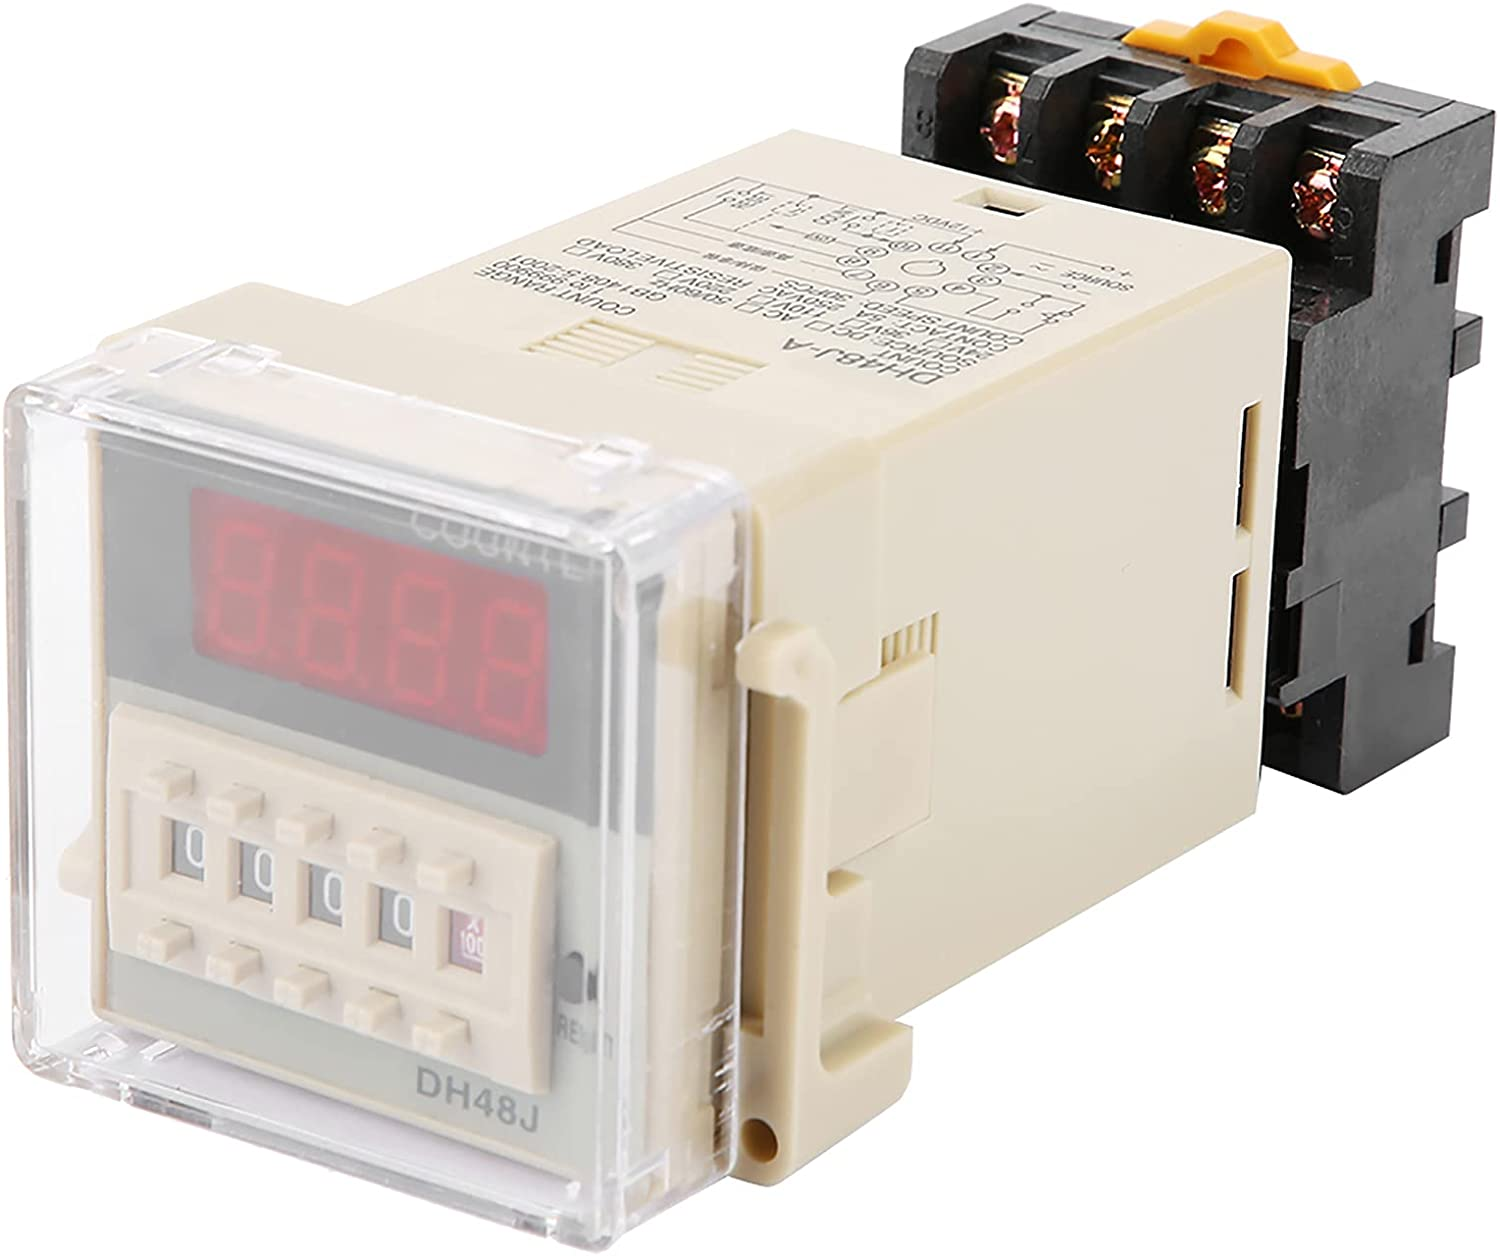 EVTSCAN Don't miss the campaign DH48J‑11A 11‑Pin Digital LED Counter half Dis Relay